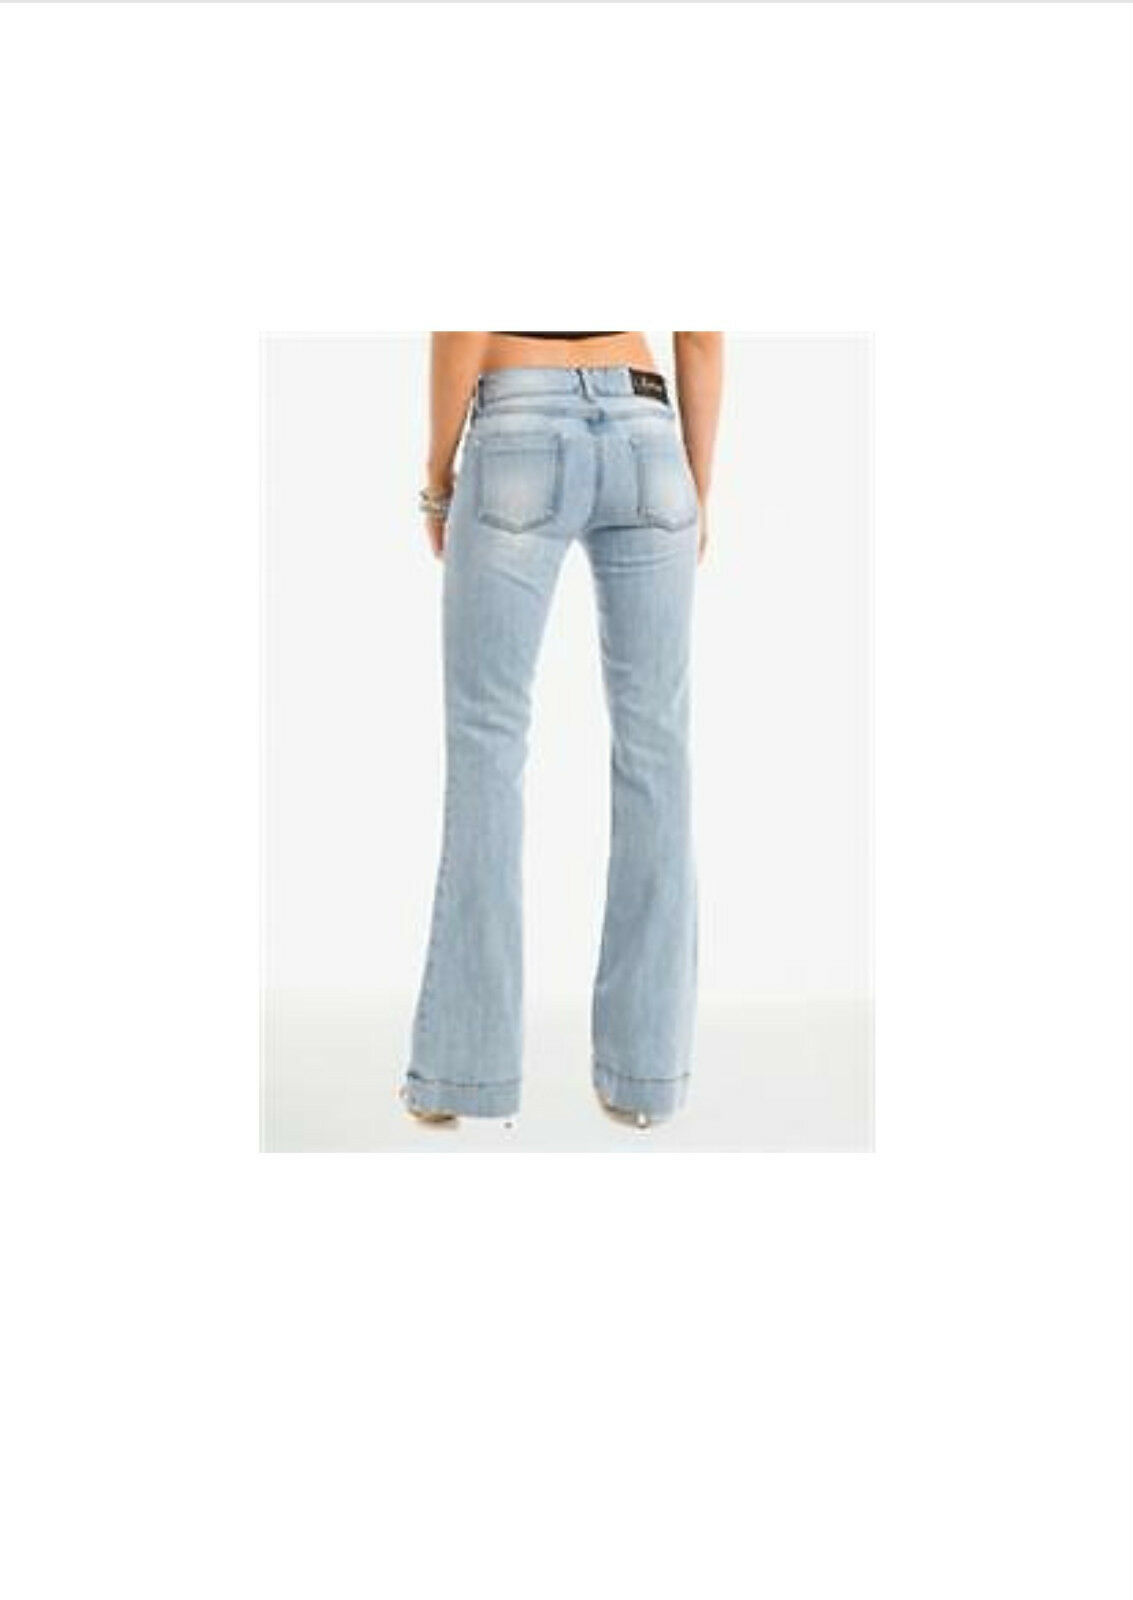 NWT MARCIANO GUESS KARLA FLARE JEANS SIZE 27 28 ICE WASH HOT